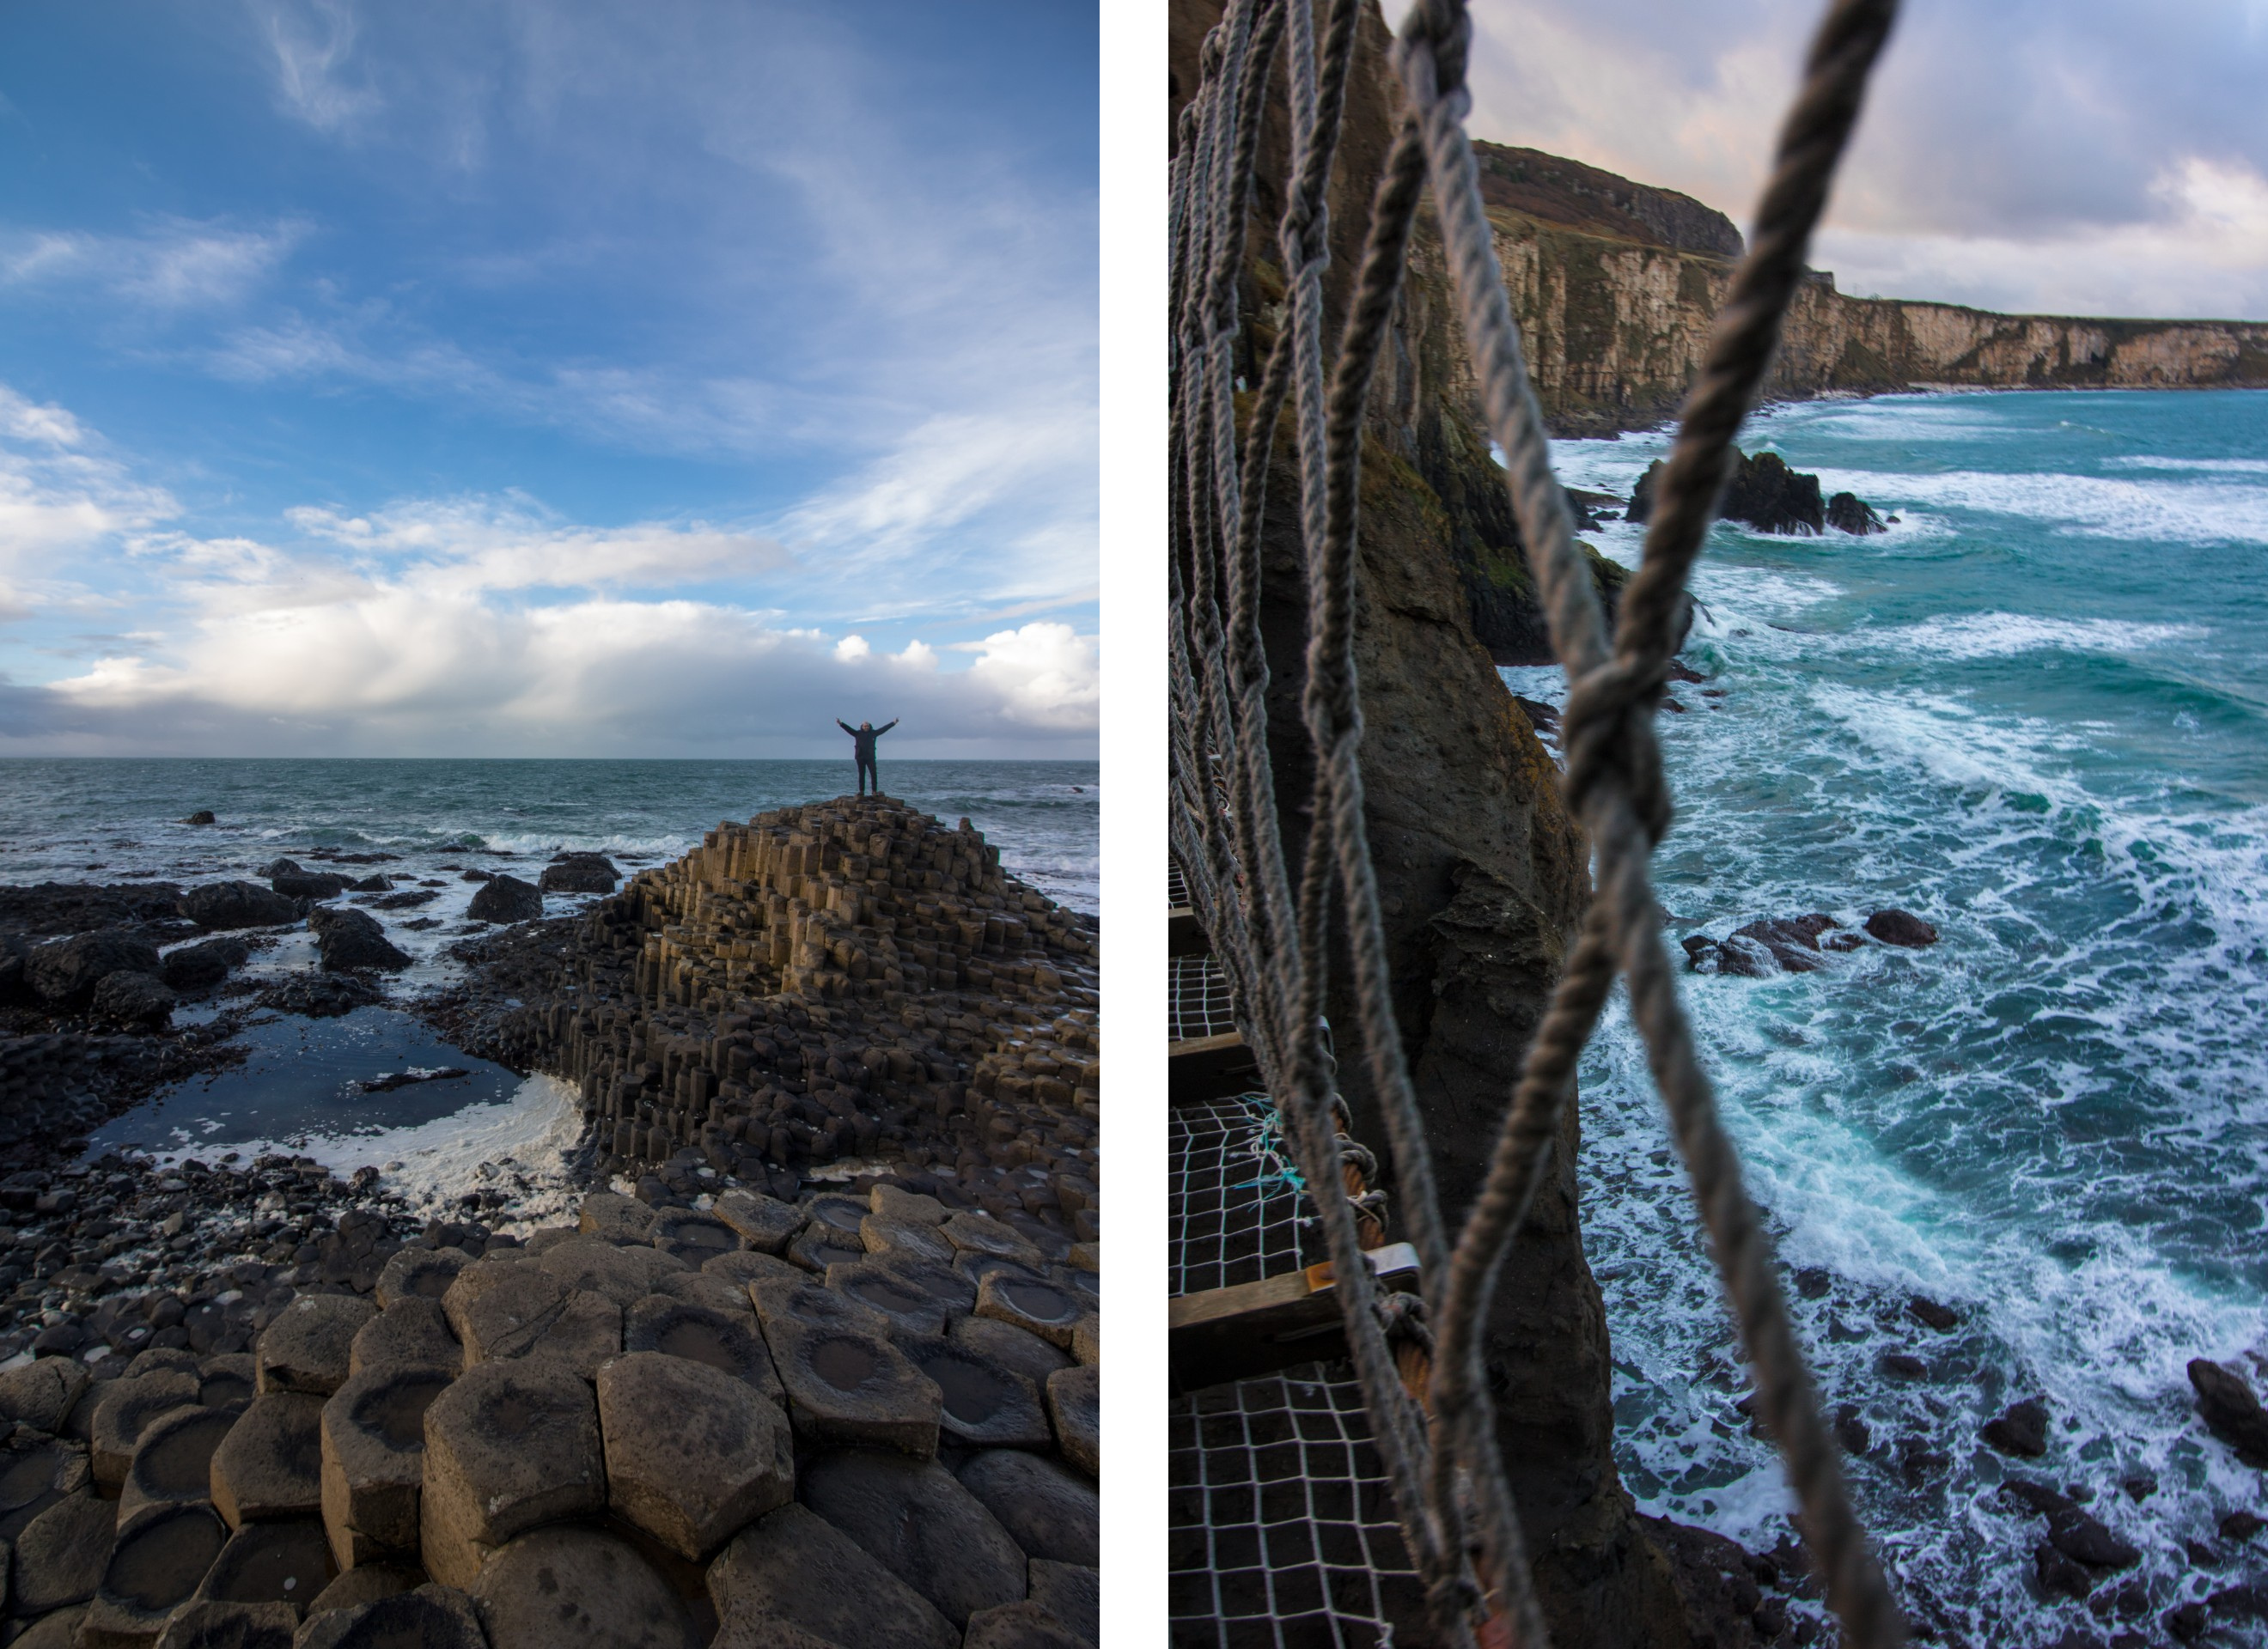 person-standing-on-rock-formations-out-to-sea-at-giants-causeway-and-carrick-a-rede-rope-bridge-looking-out-to-sea